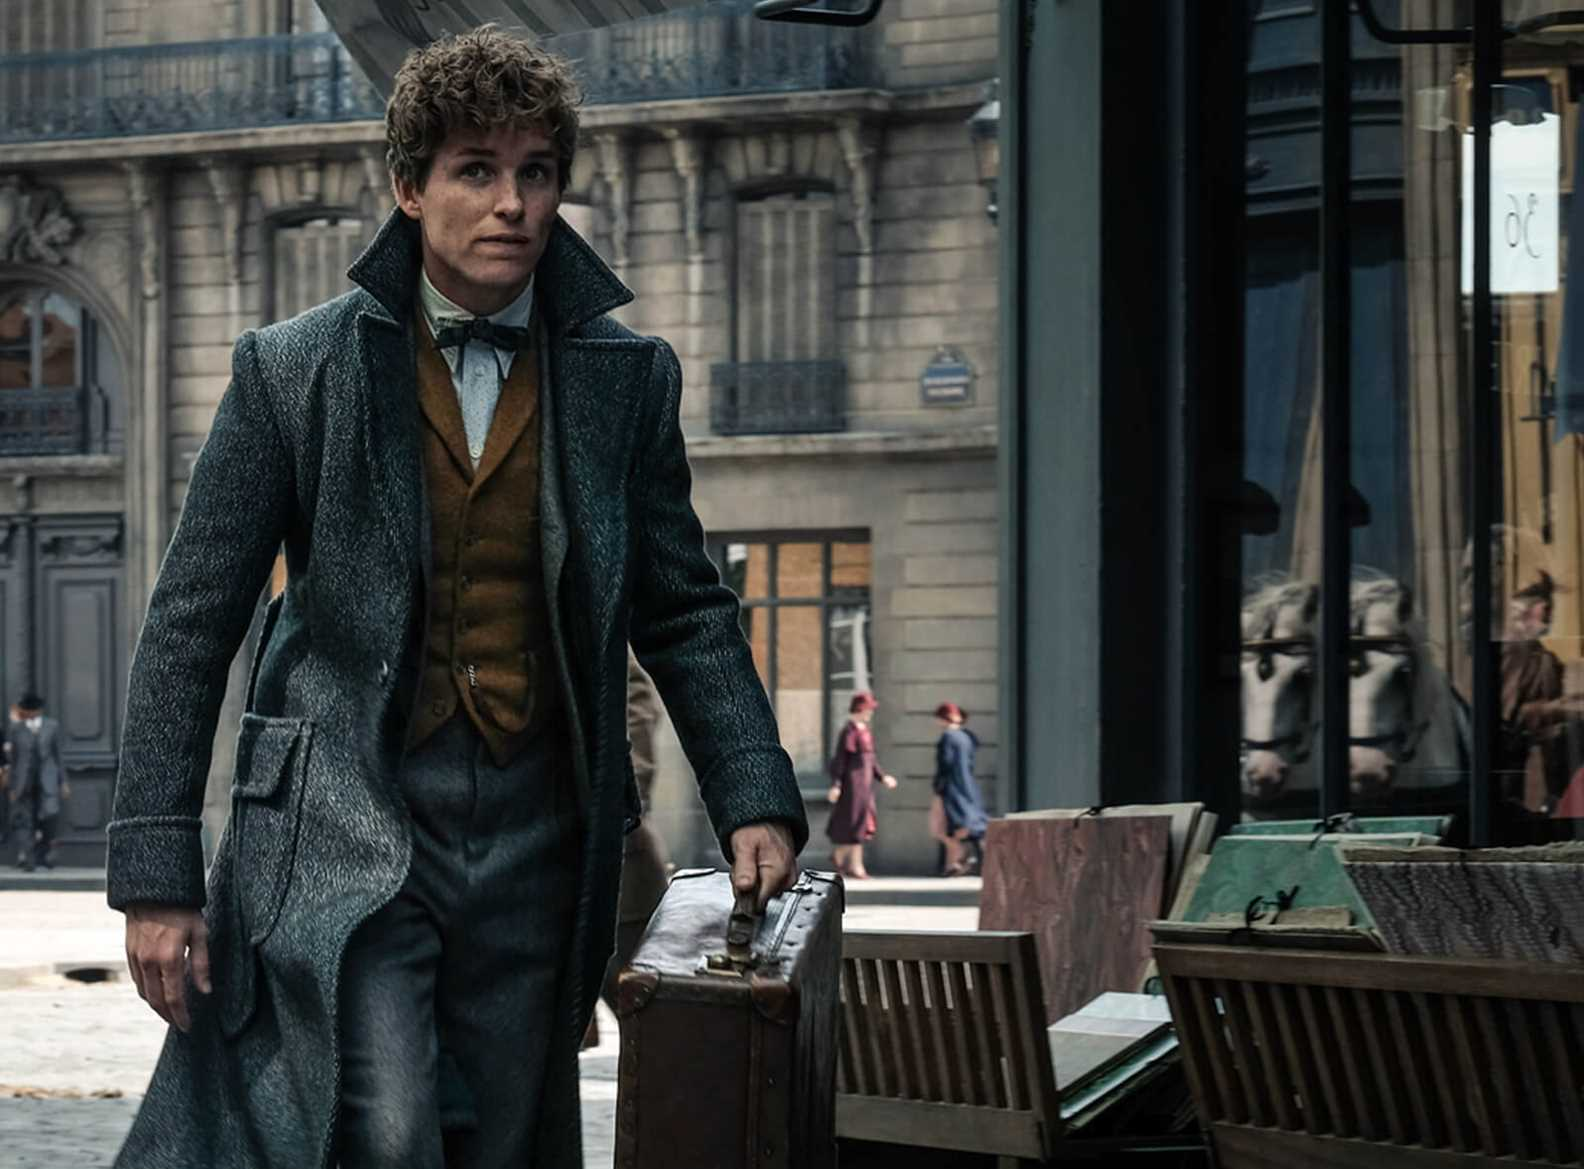 Fantastic Beasts-The Crimes of Grindelward